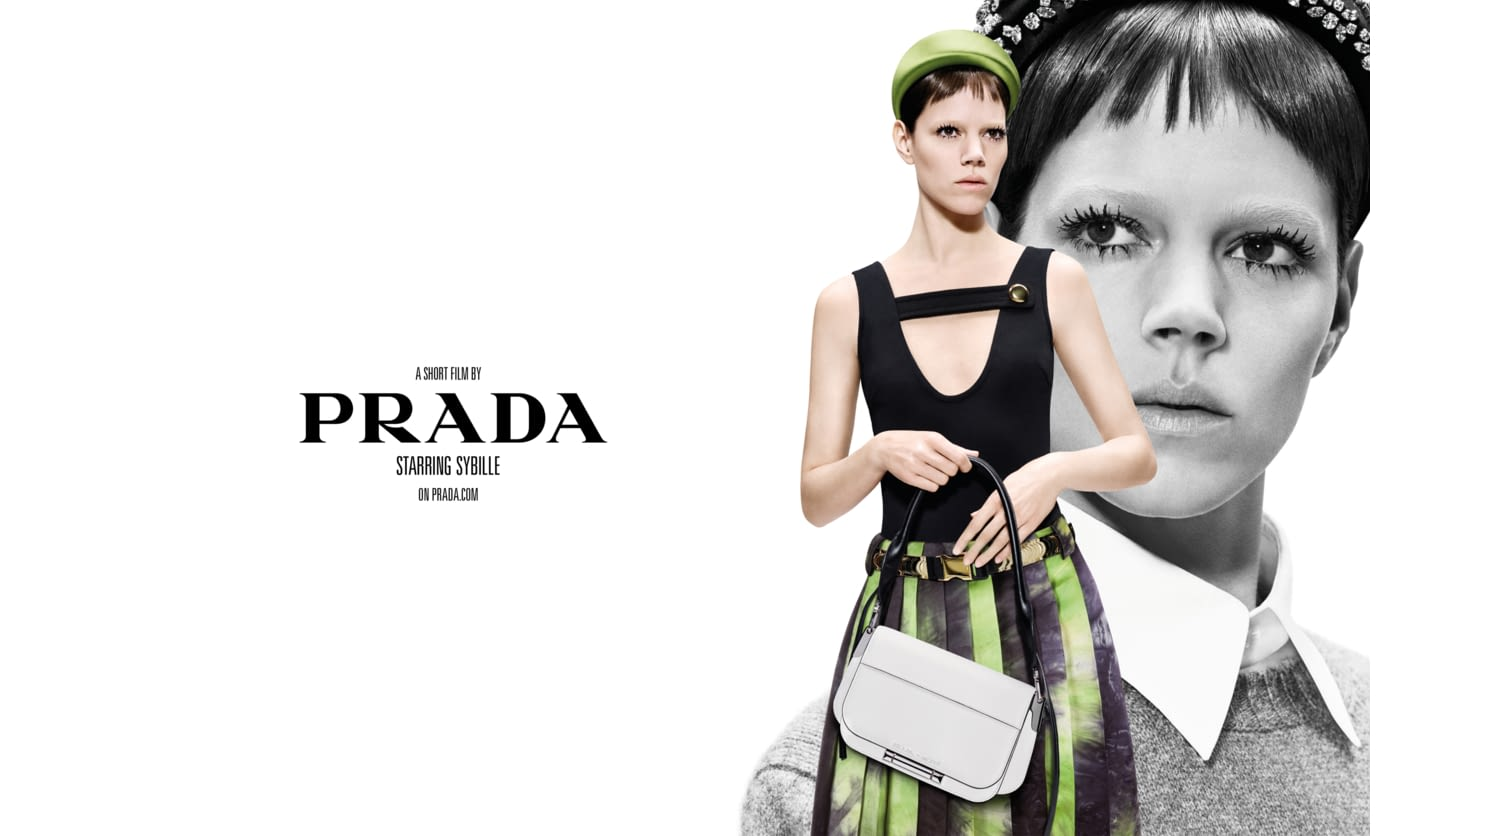 Prada Womenswear SS19 Advertising Campaign_05.jpg